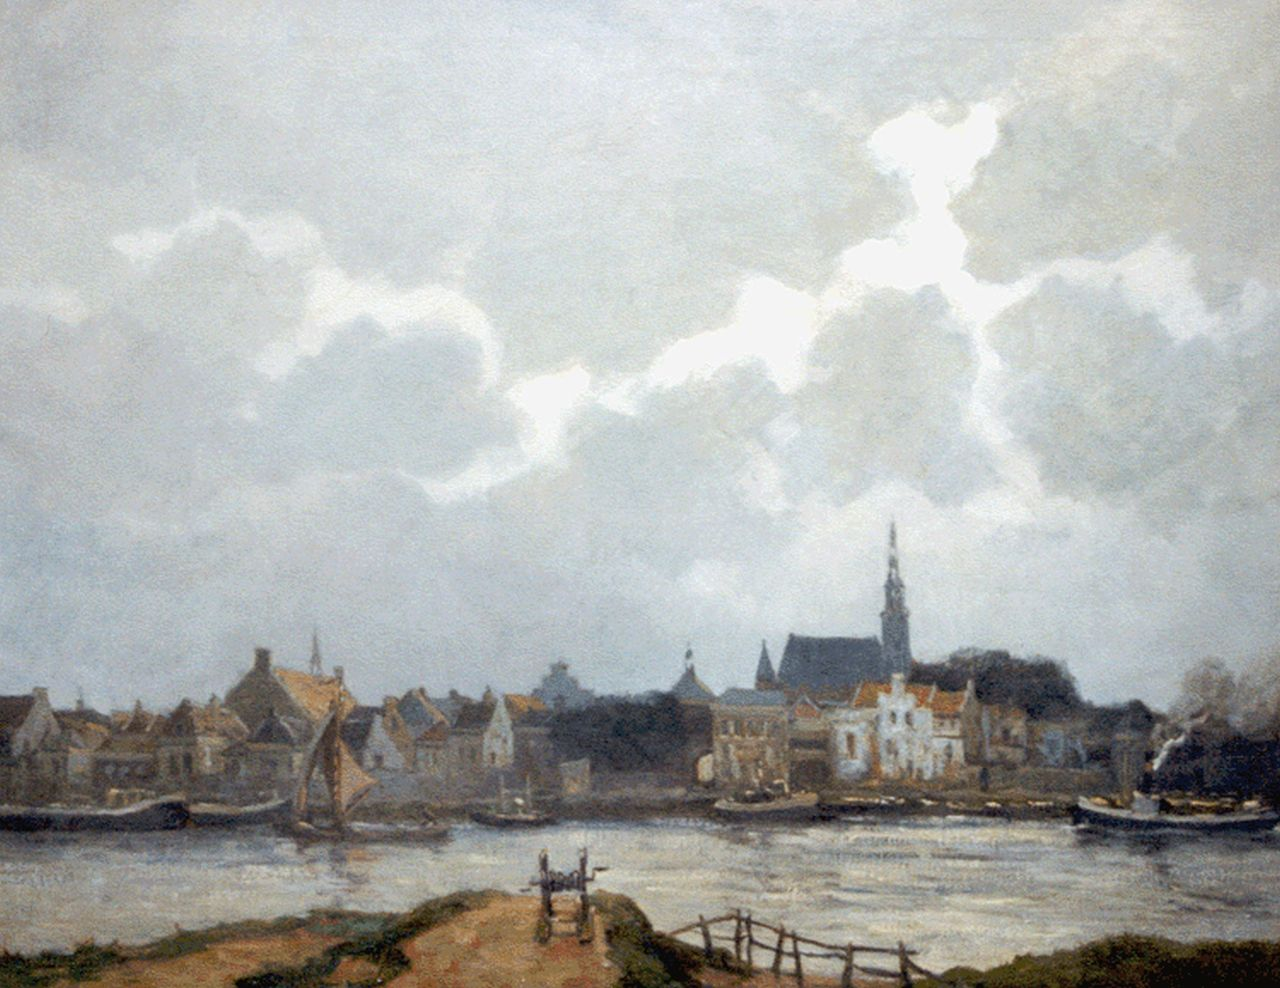 Martin van Waning | A Dutch town along a waterway, oil on canvas, 80.5 x 100.2 cm, signed l.r.